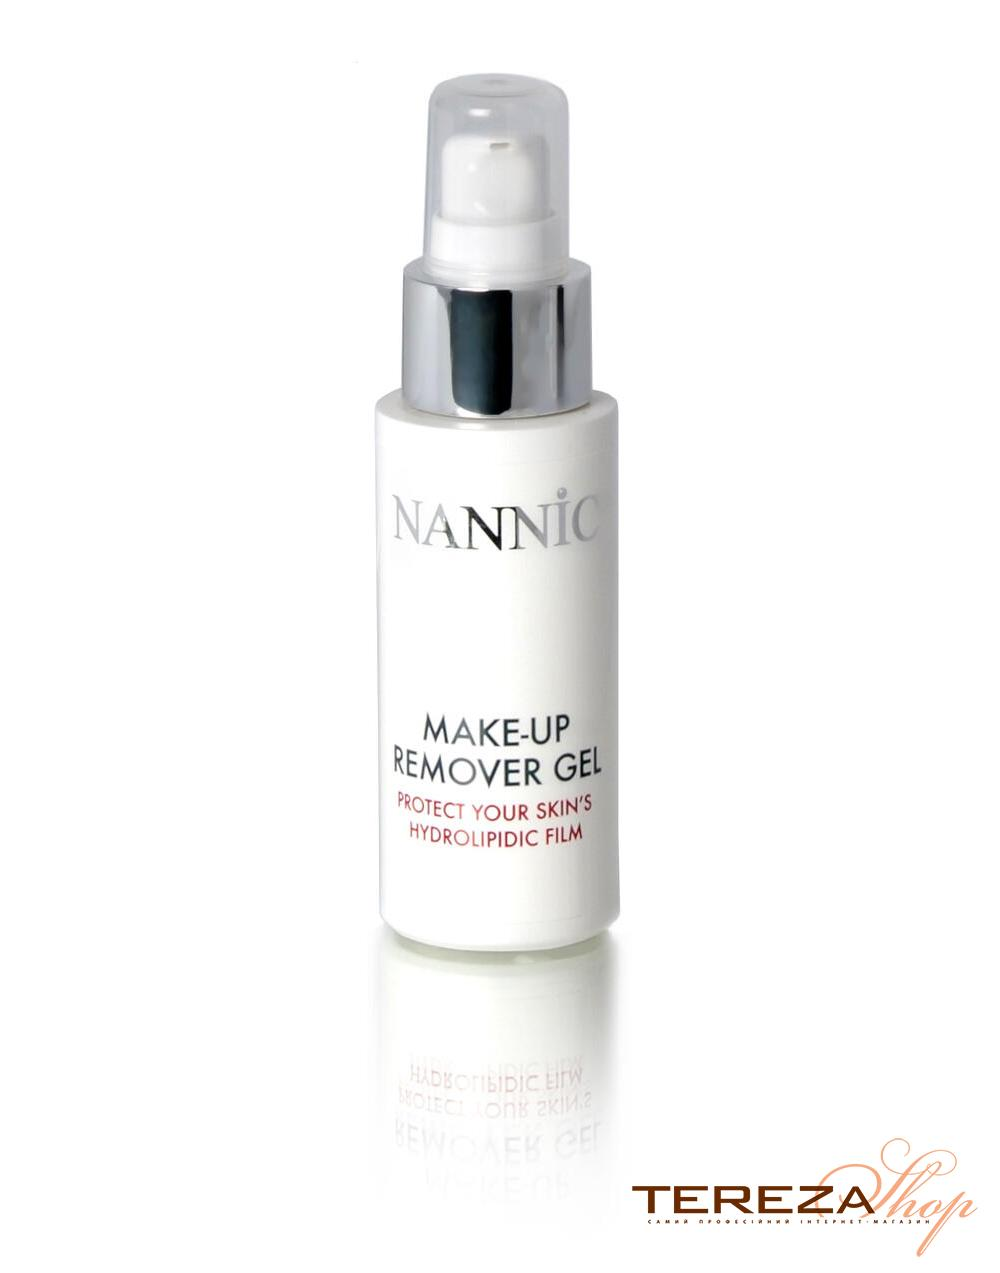 MAKE-UP REMOVER GEL 50ml NANNIC | Tereza Shop